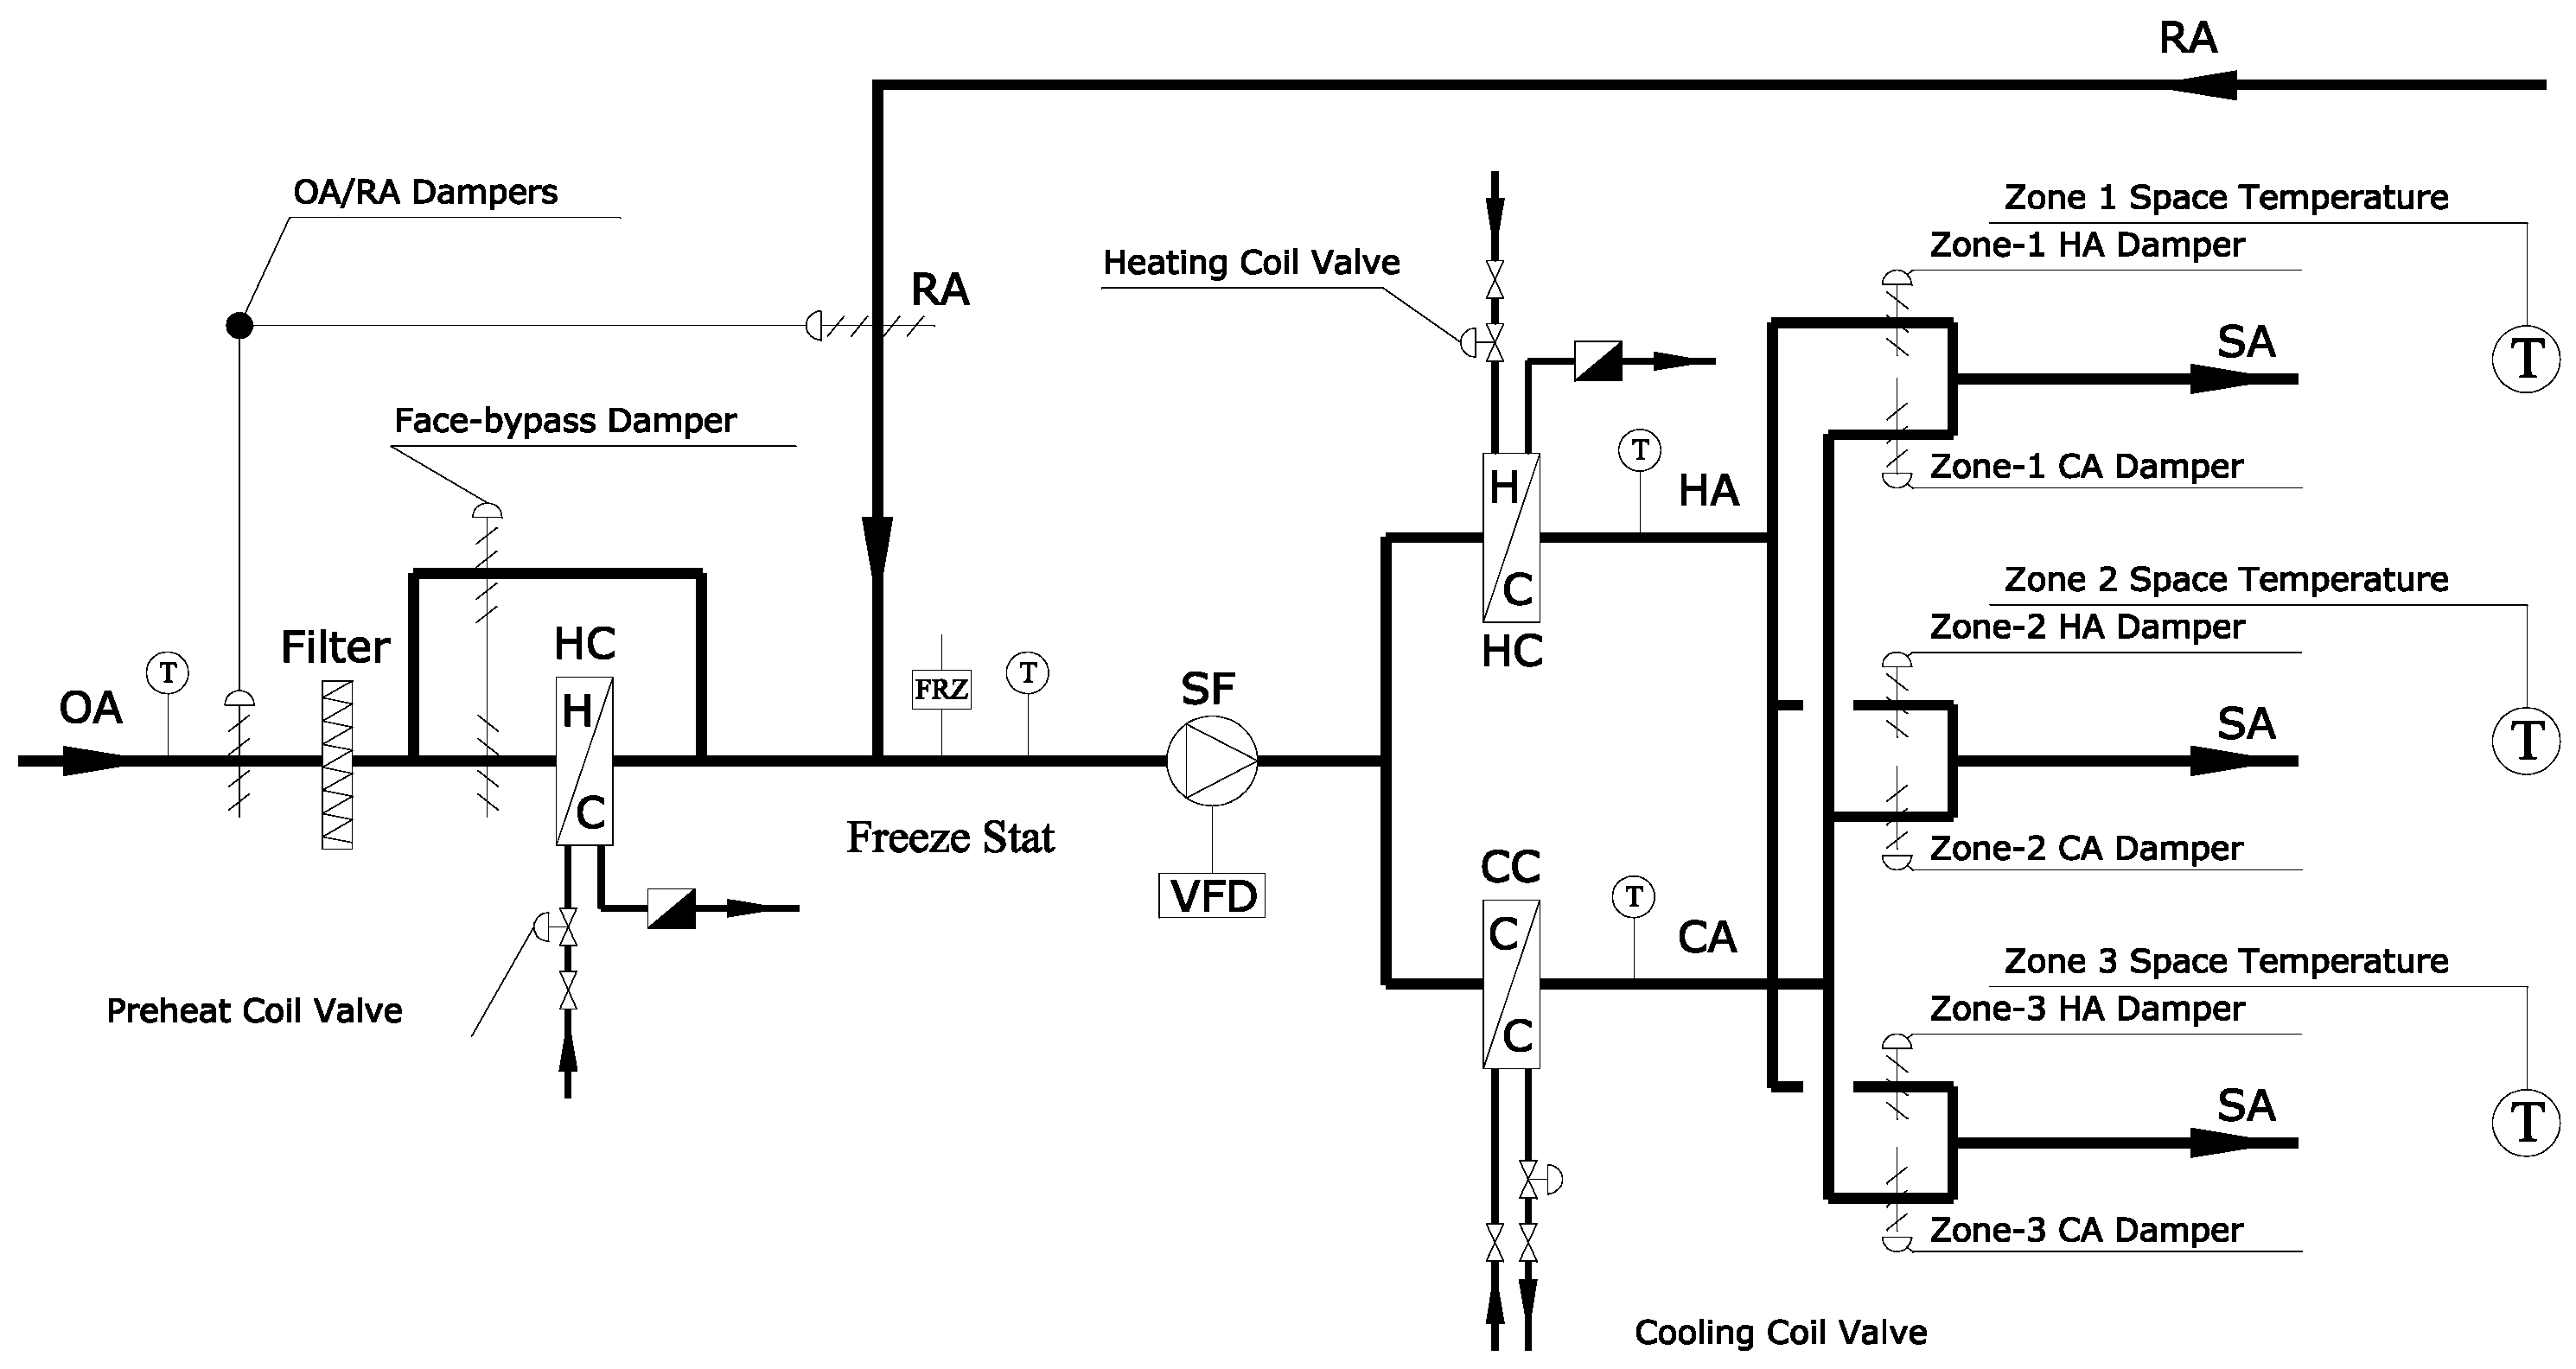 Rooftop Unit Schematic